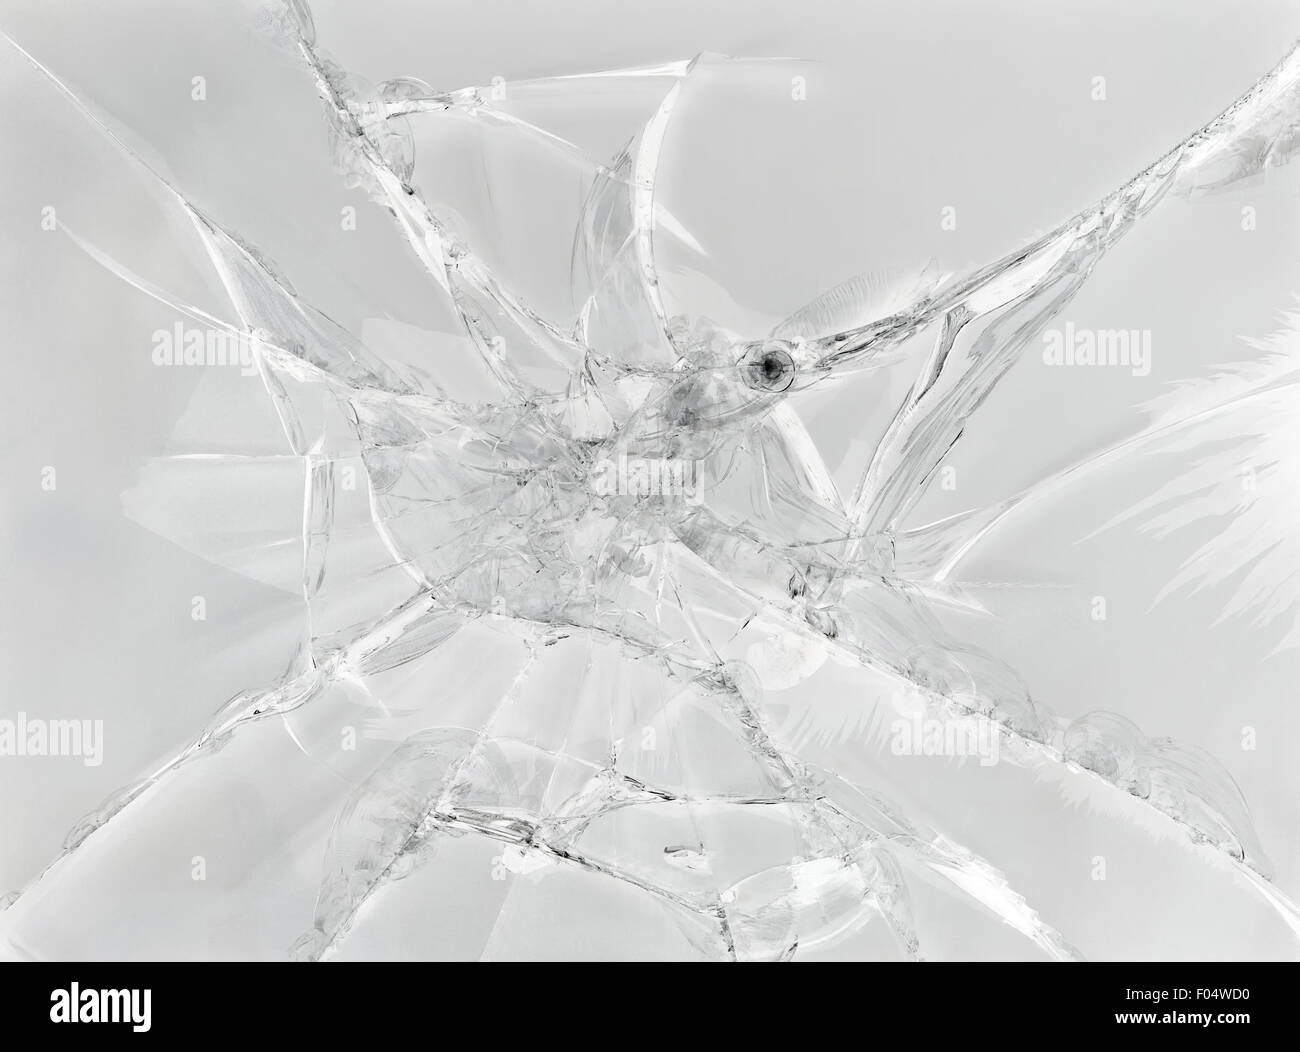 Gray background of cracked glass - Stock Image